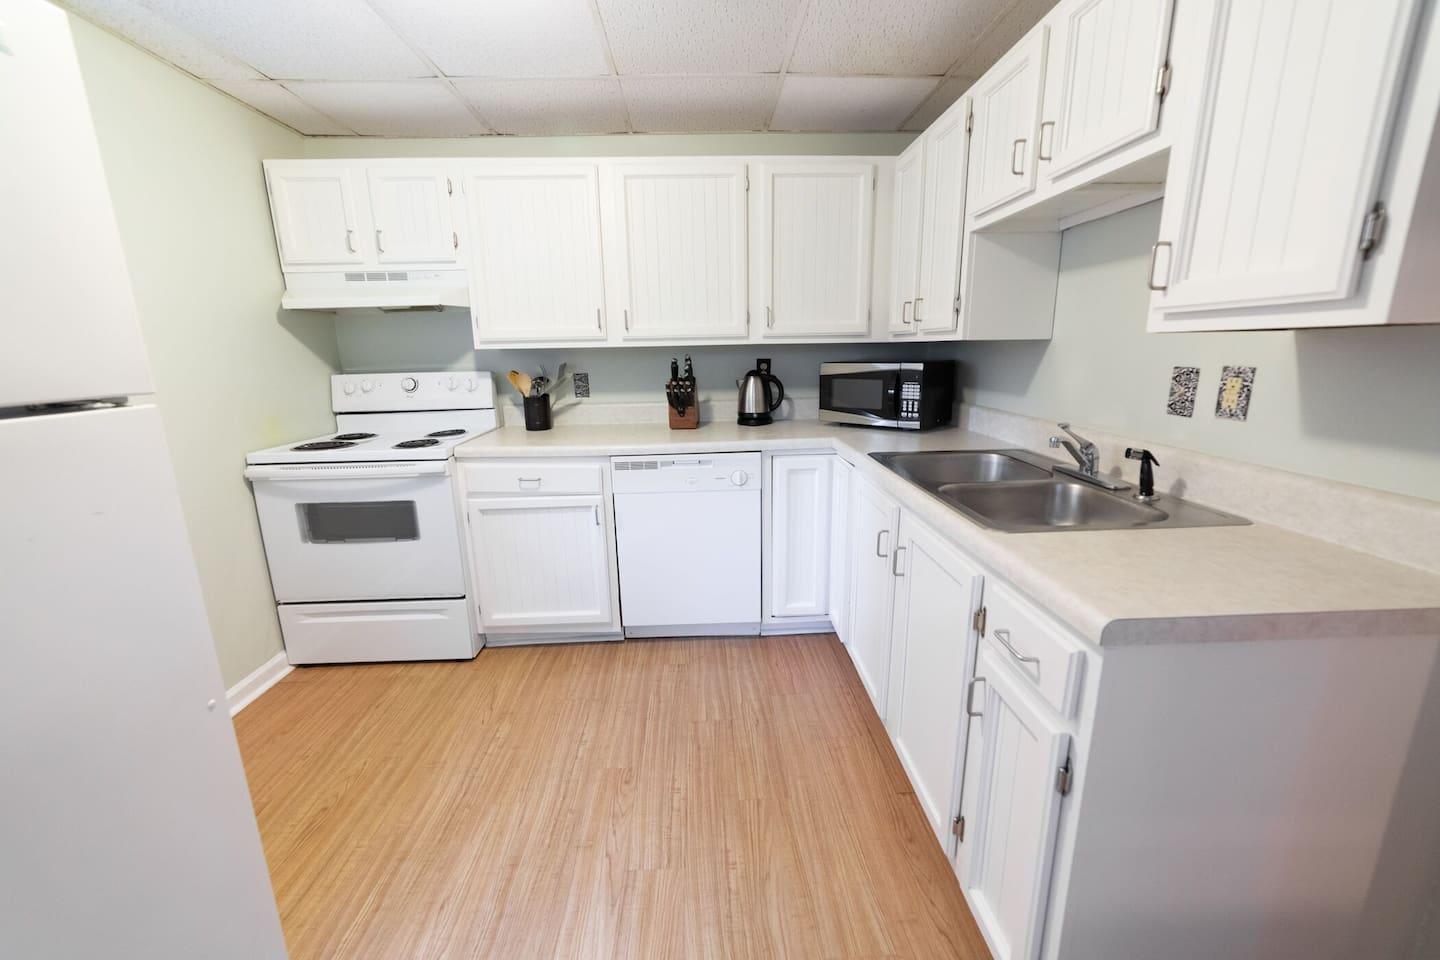 The kitchen is stocked with natural & organic cooking essentials, cookware & has a stove, fridge, washer/dryer, microwave, dishwasher, garbage disposal & kettle.